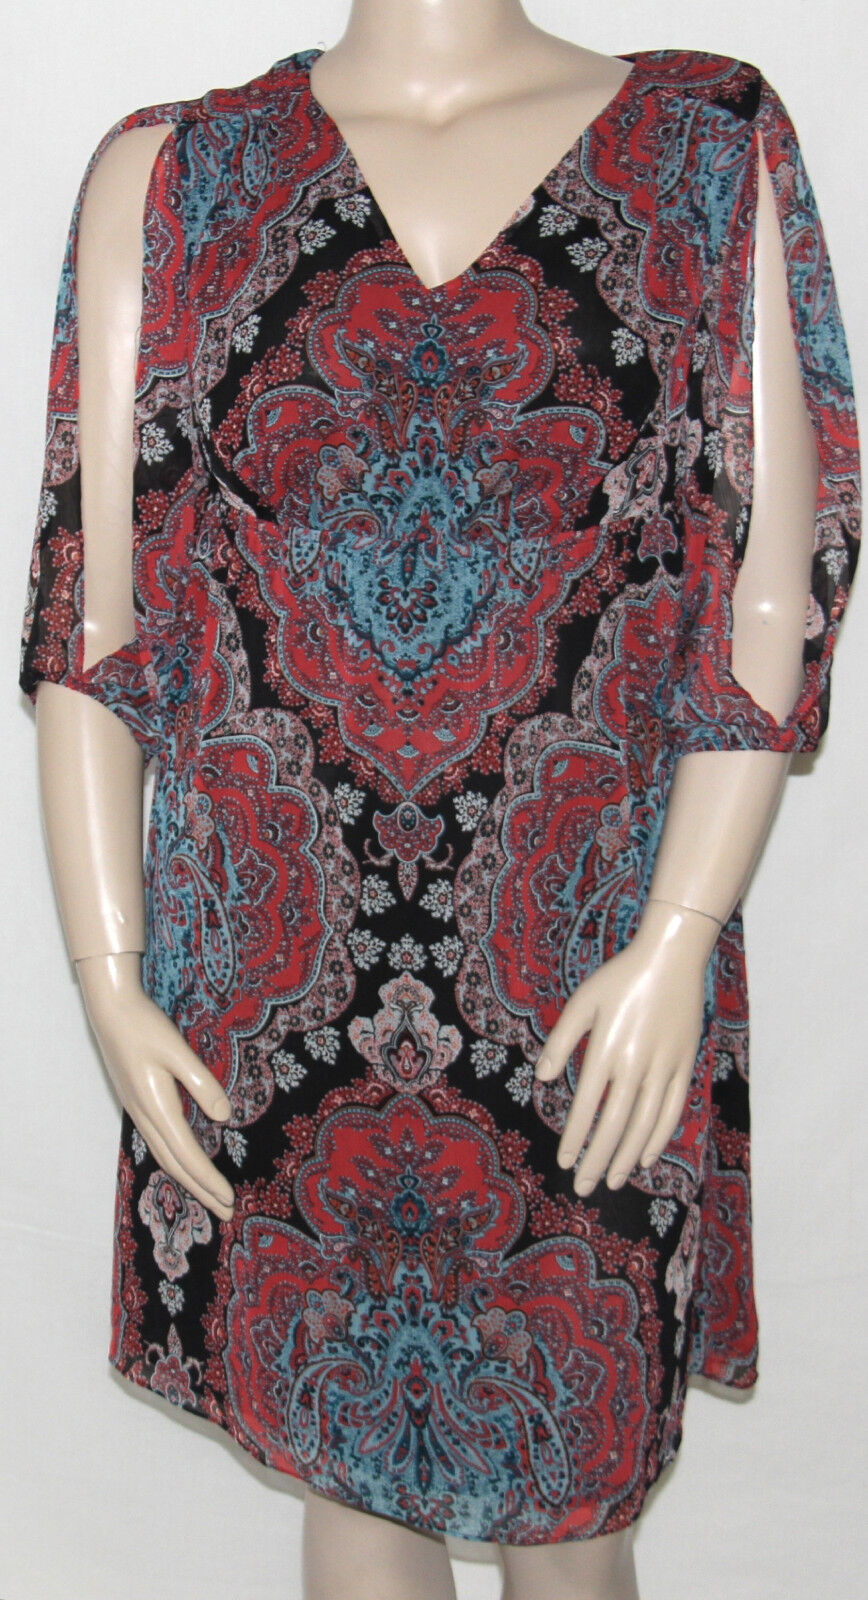 NEW INC International Concepts Plus 0X Split-Sleeve Printed Empirewaist Dress